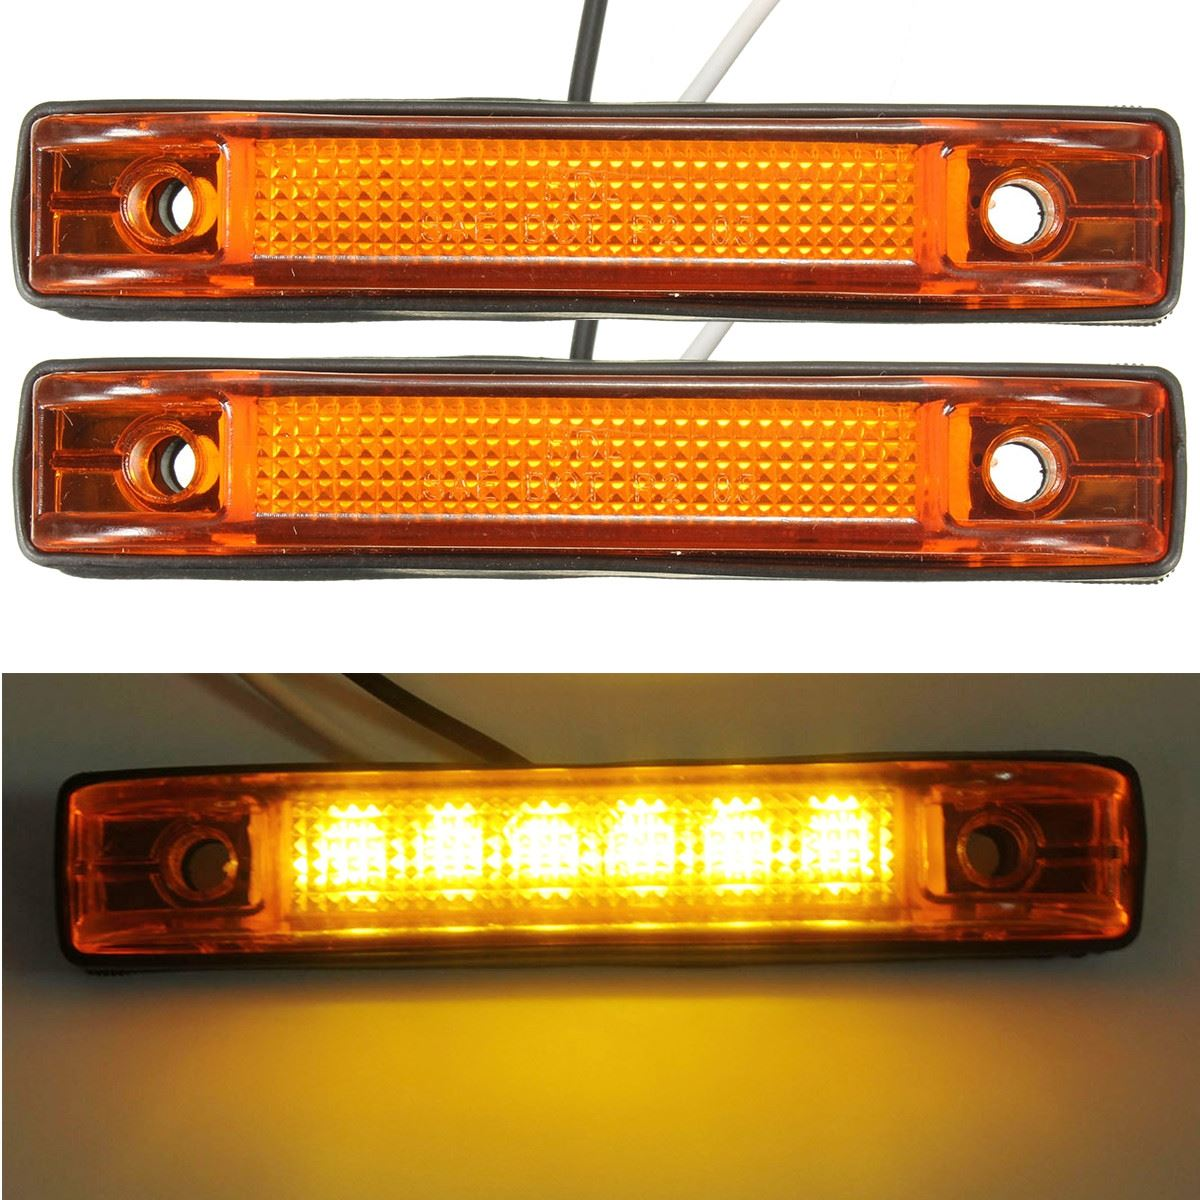 2Pcs 12V Yellow 6 LED Clearance Side Marker Light Indicator Lamp Truck Trailer RV Auto Car LED Turn signal Lights 2pcs car waterproof side marker light truck clearance lights trailer 3 led warning lamp bulb 12v